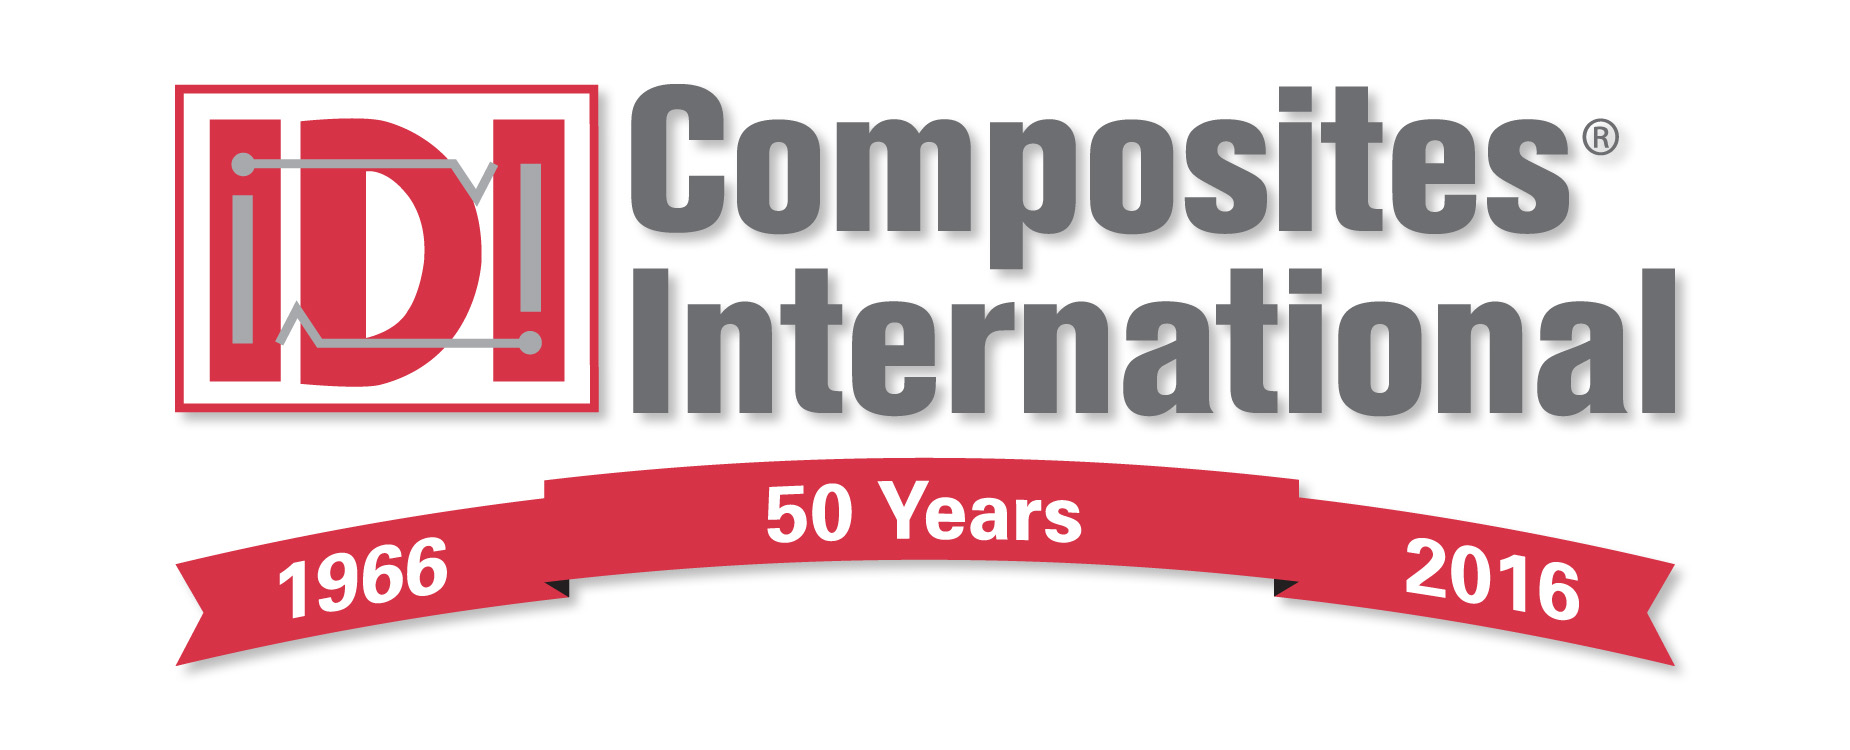 IDI Composites International Celebrates 50 Years In Business